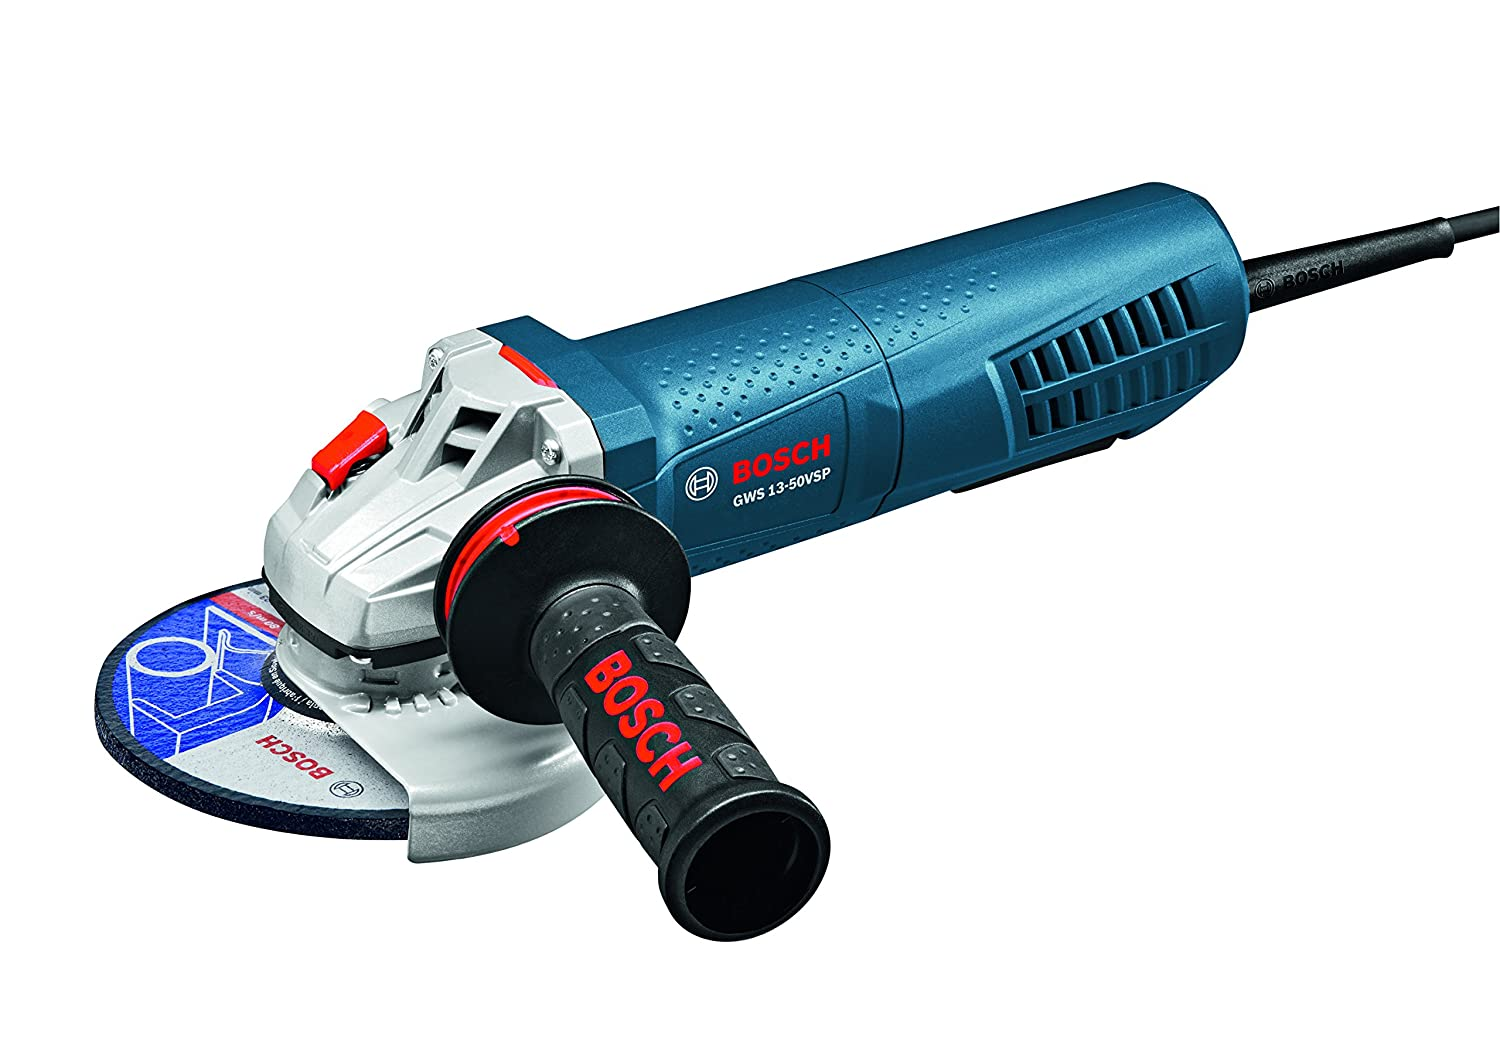 Bosch GWS13 50VSP High Performance Angle Grinder Variable Speed with Paddle Switch 5